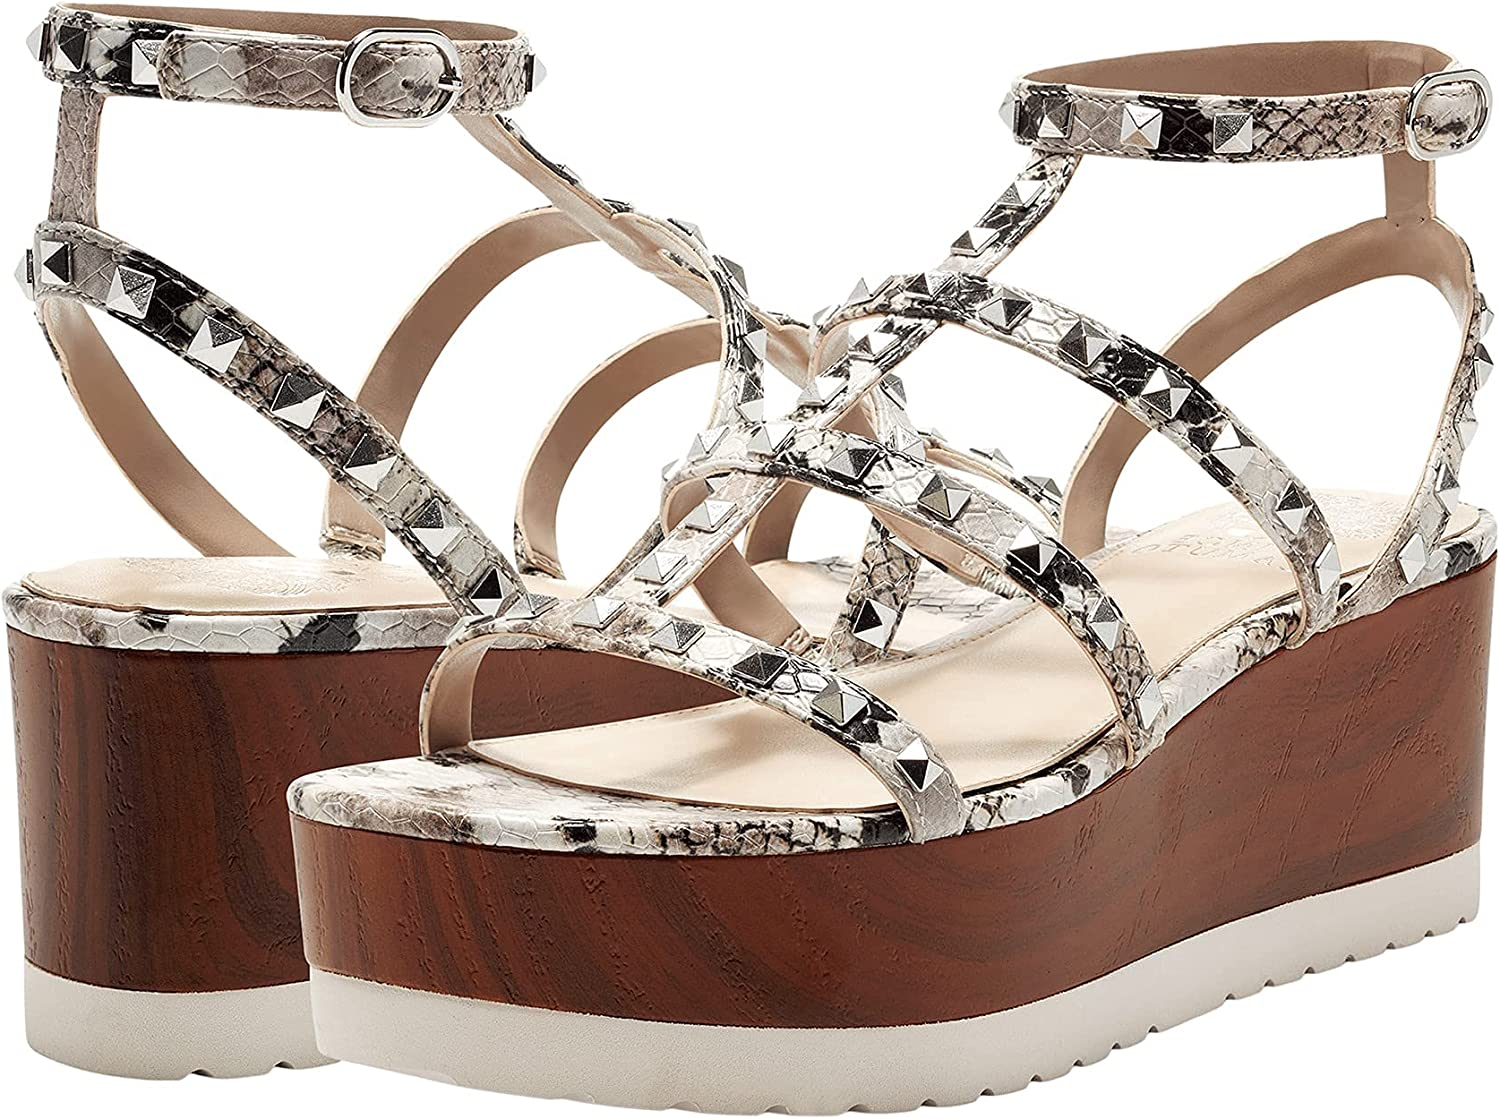 Vince Camuto Women's Lowest price challenge Pemolie Rapid rise Wedge Sandal Gladiator